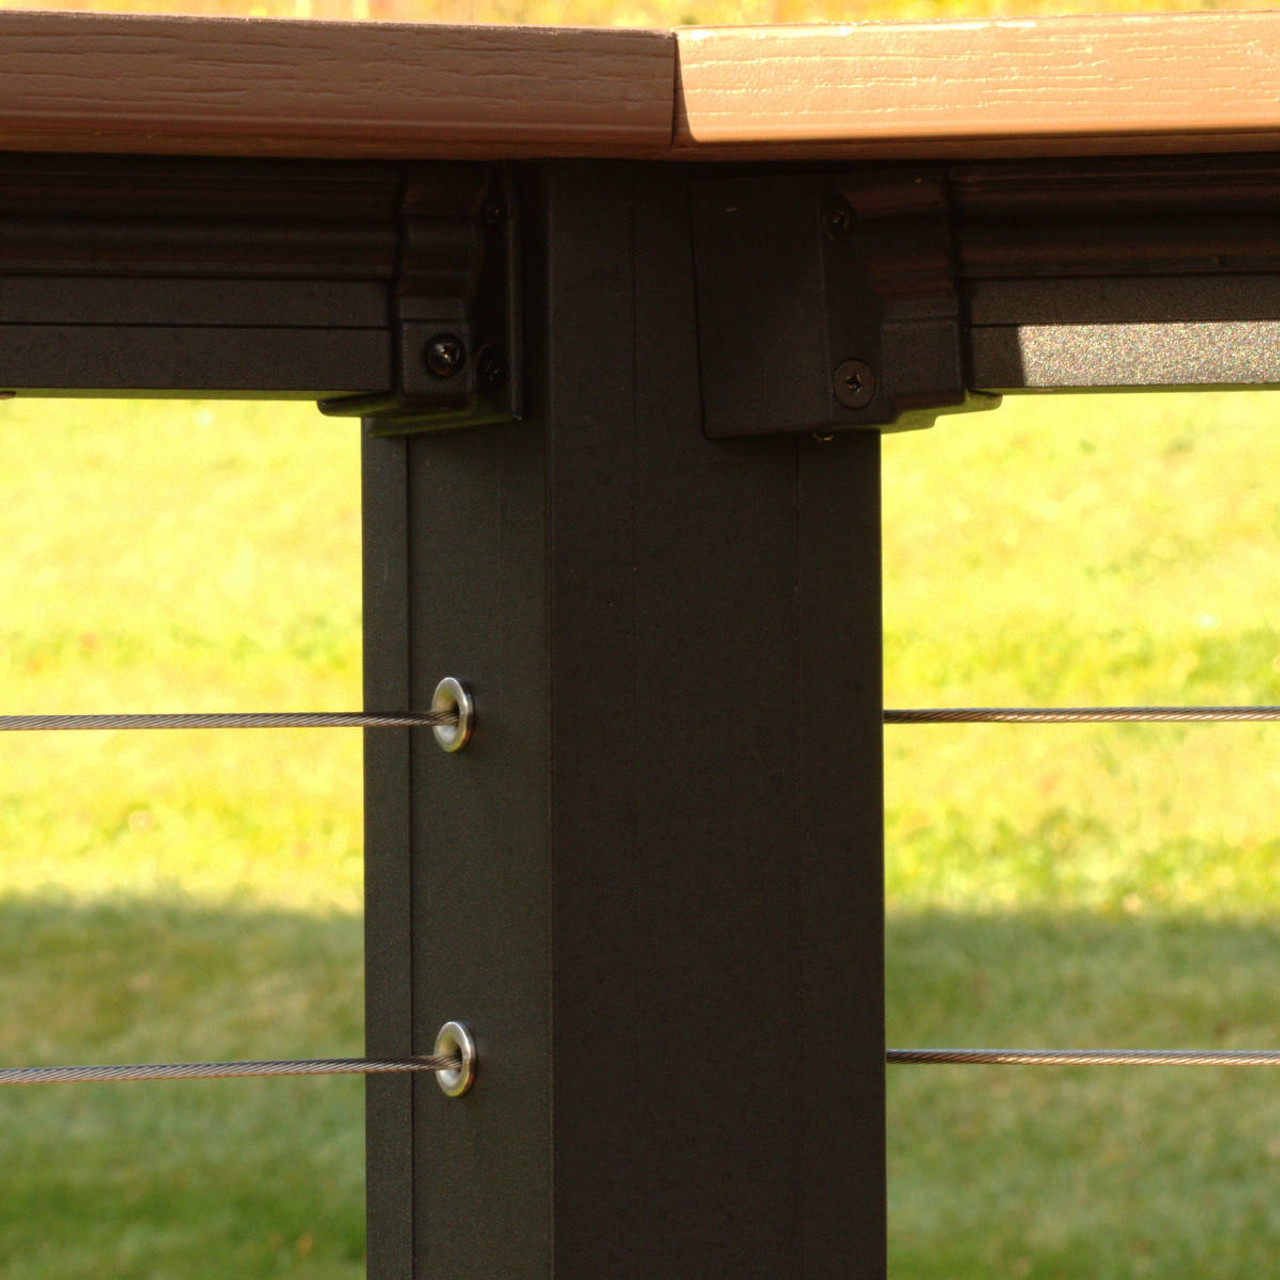 Level Deckboard Mount Brackets on Key-Link Lancaster Railing with Cable Infill